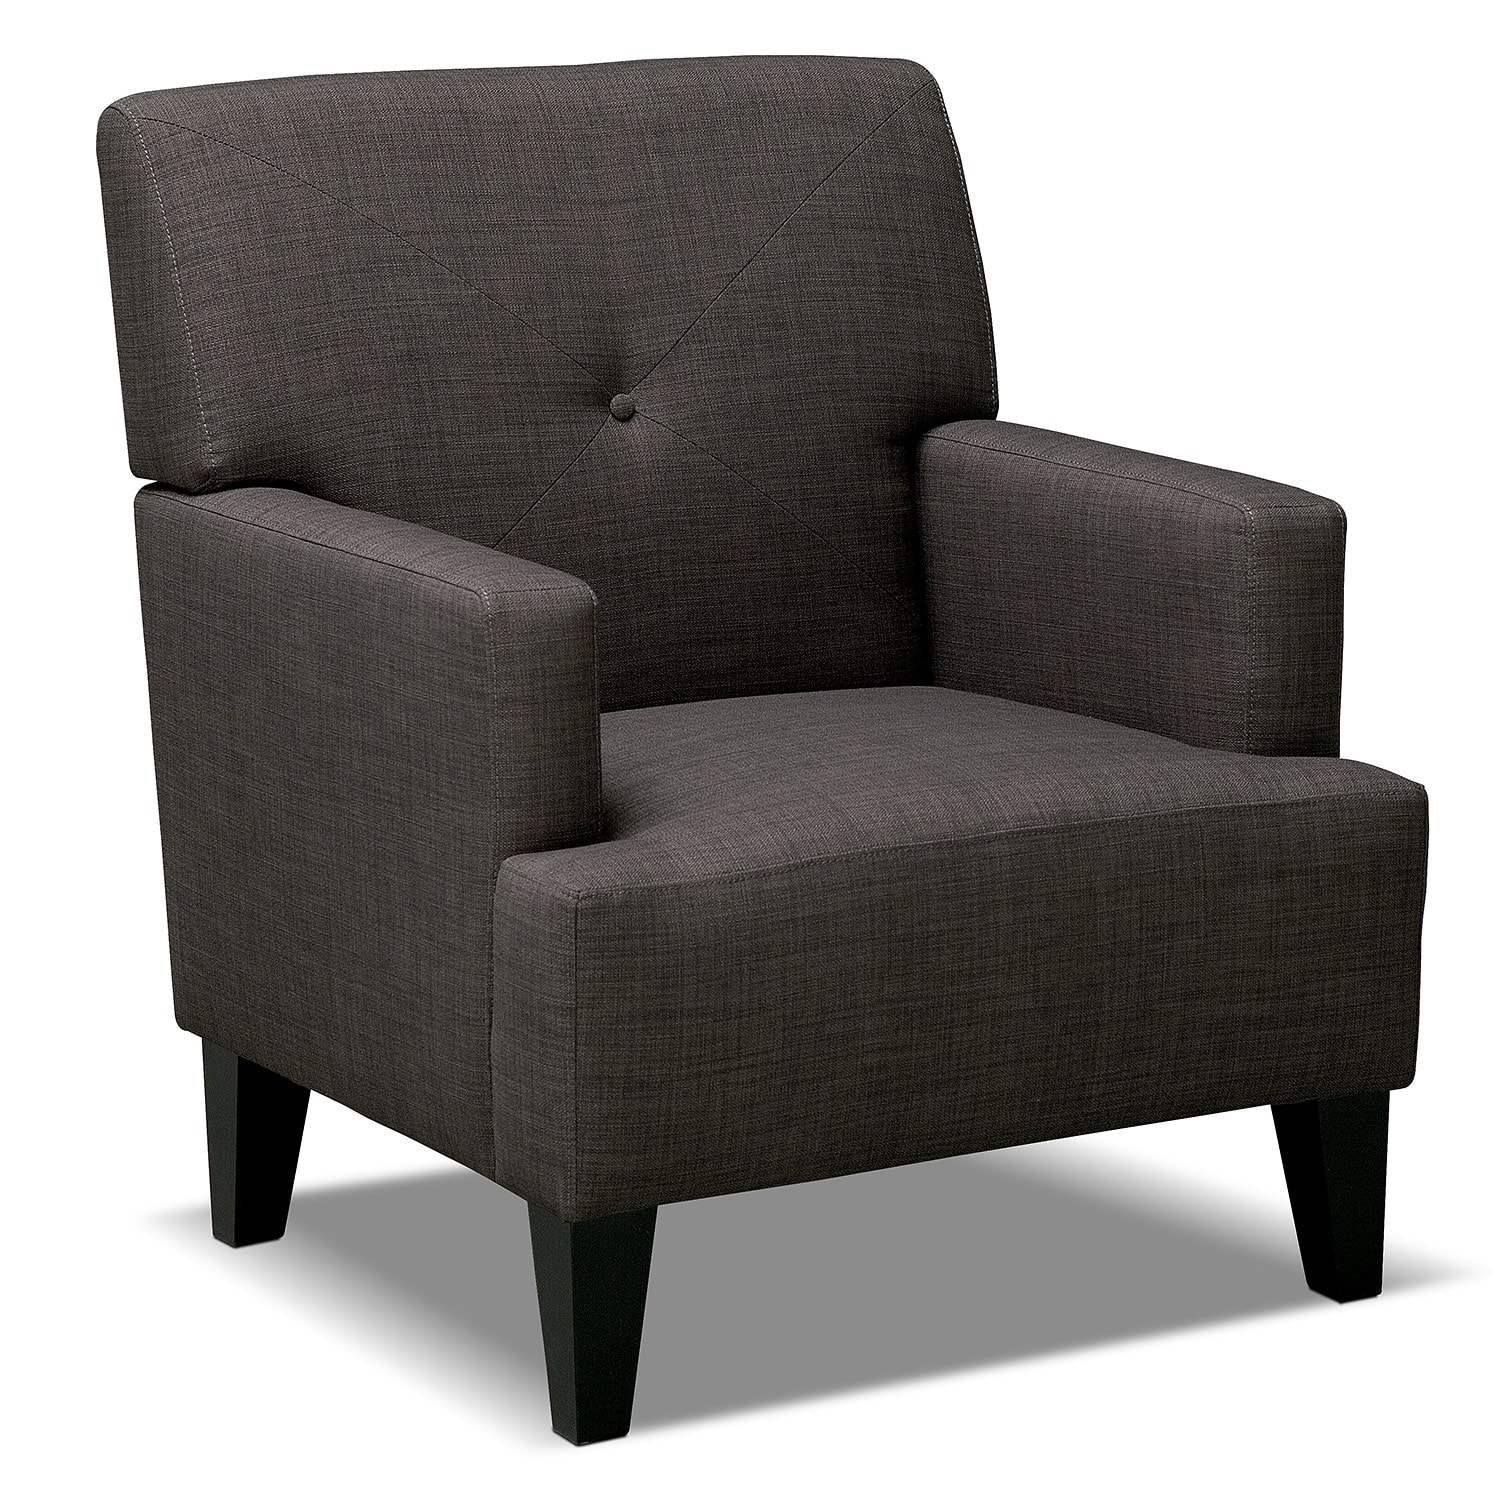 Avalon accent chair value city furniture for Living room accent chairs